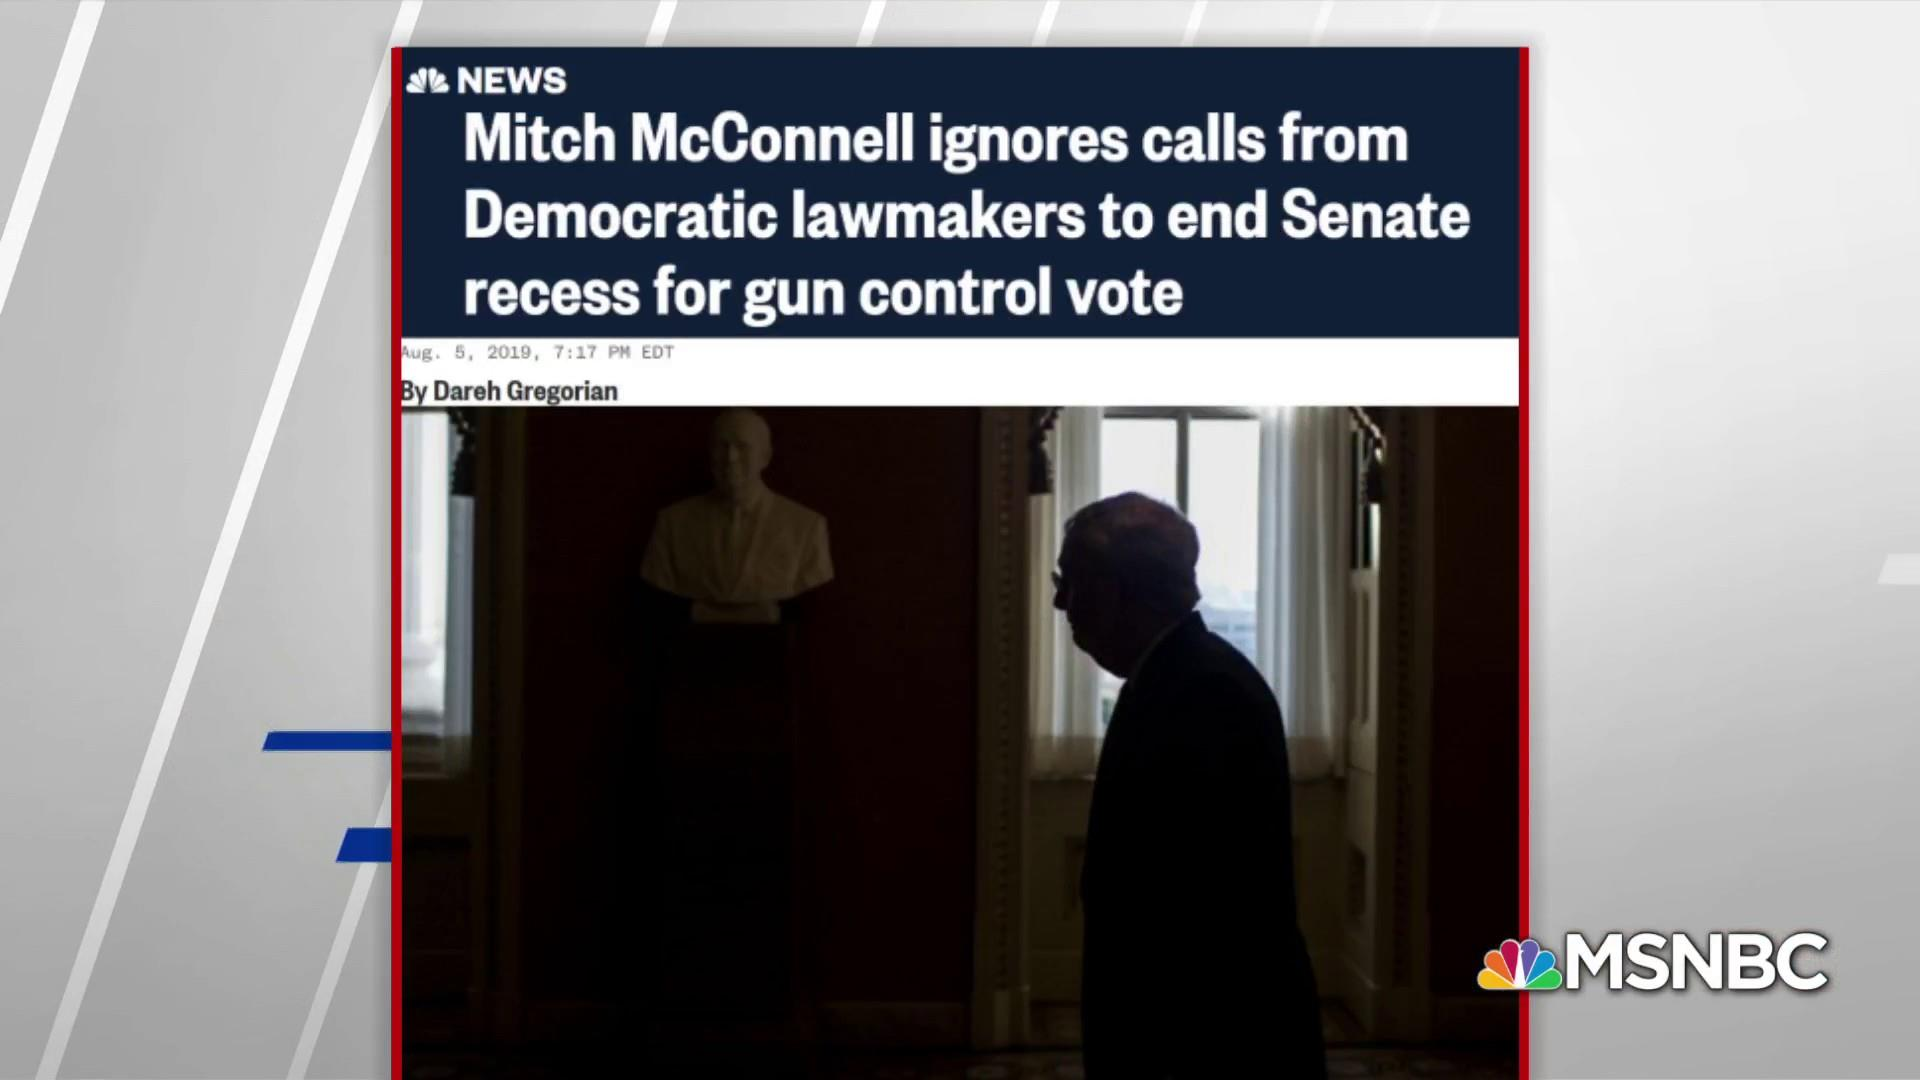 Mitch McConnell ignores calls from Dem lawmakers to end recess for gun control vote